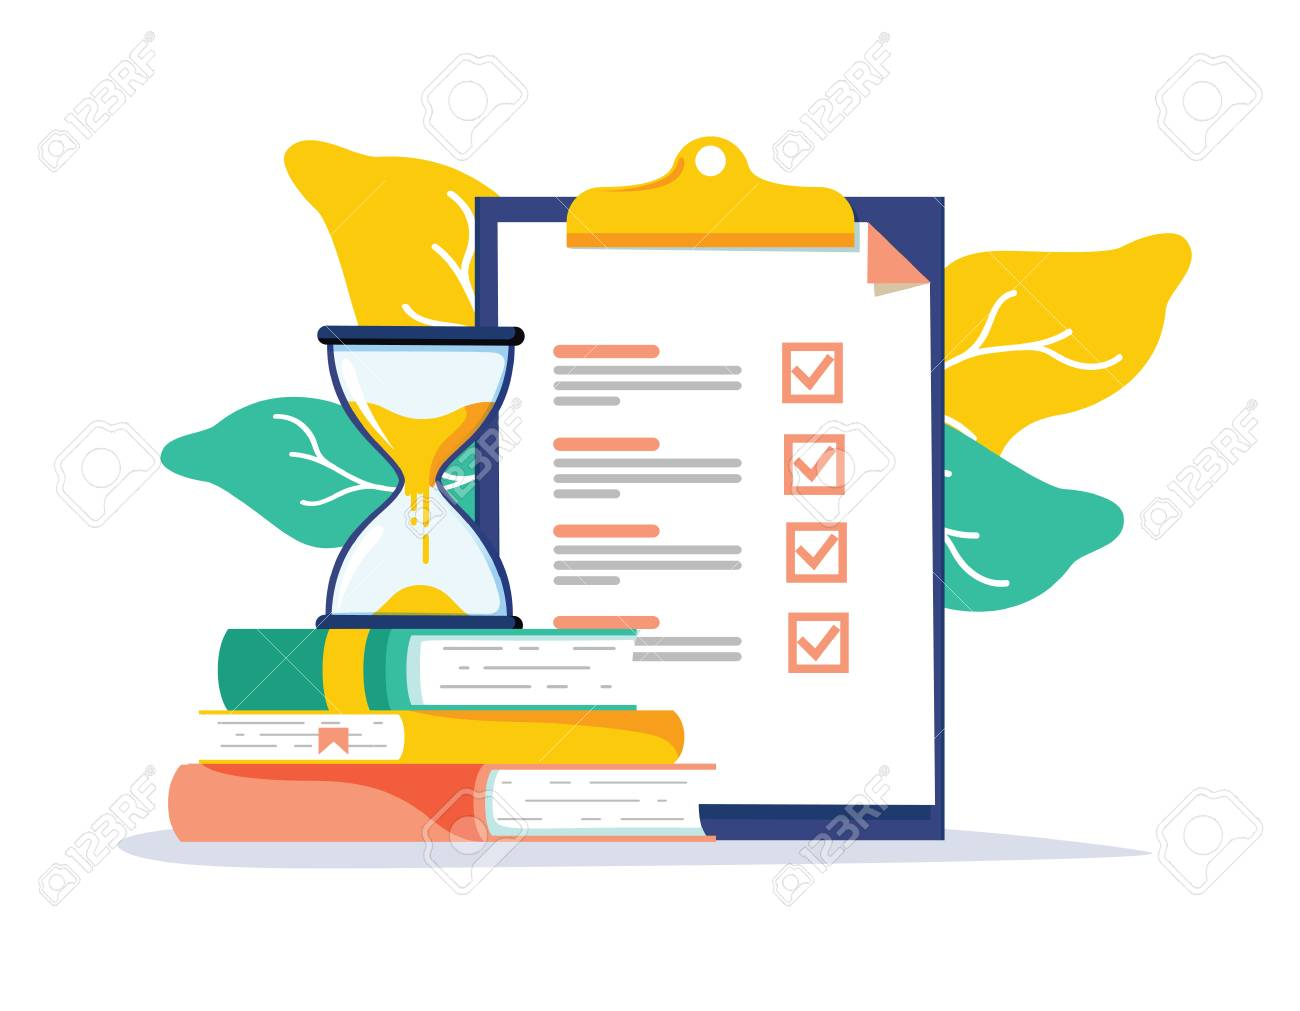 Exam preparation school test. Examination concept checklist and hourglass, choosing answer questionnaire form, education vector flat illustration. Online course learning exam. Fill out form summary - 125498787